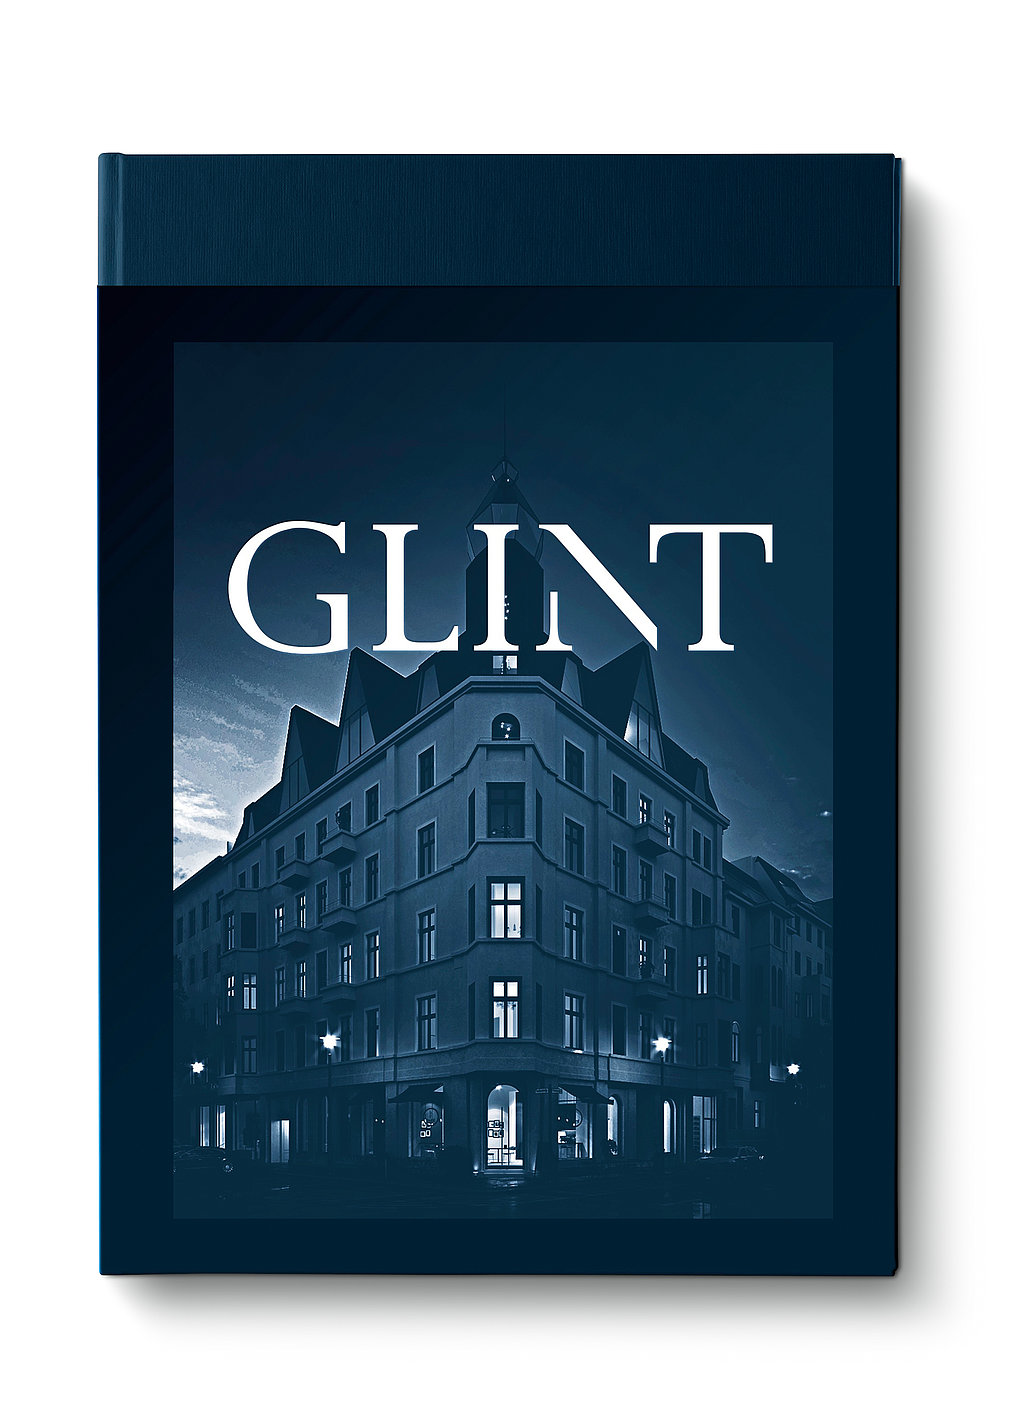 GLINT Berlin | Red Dot Design Award